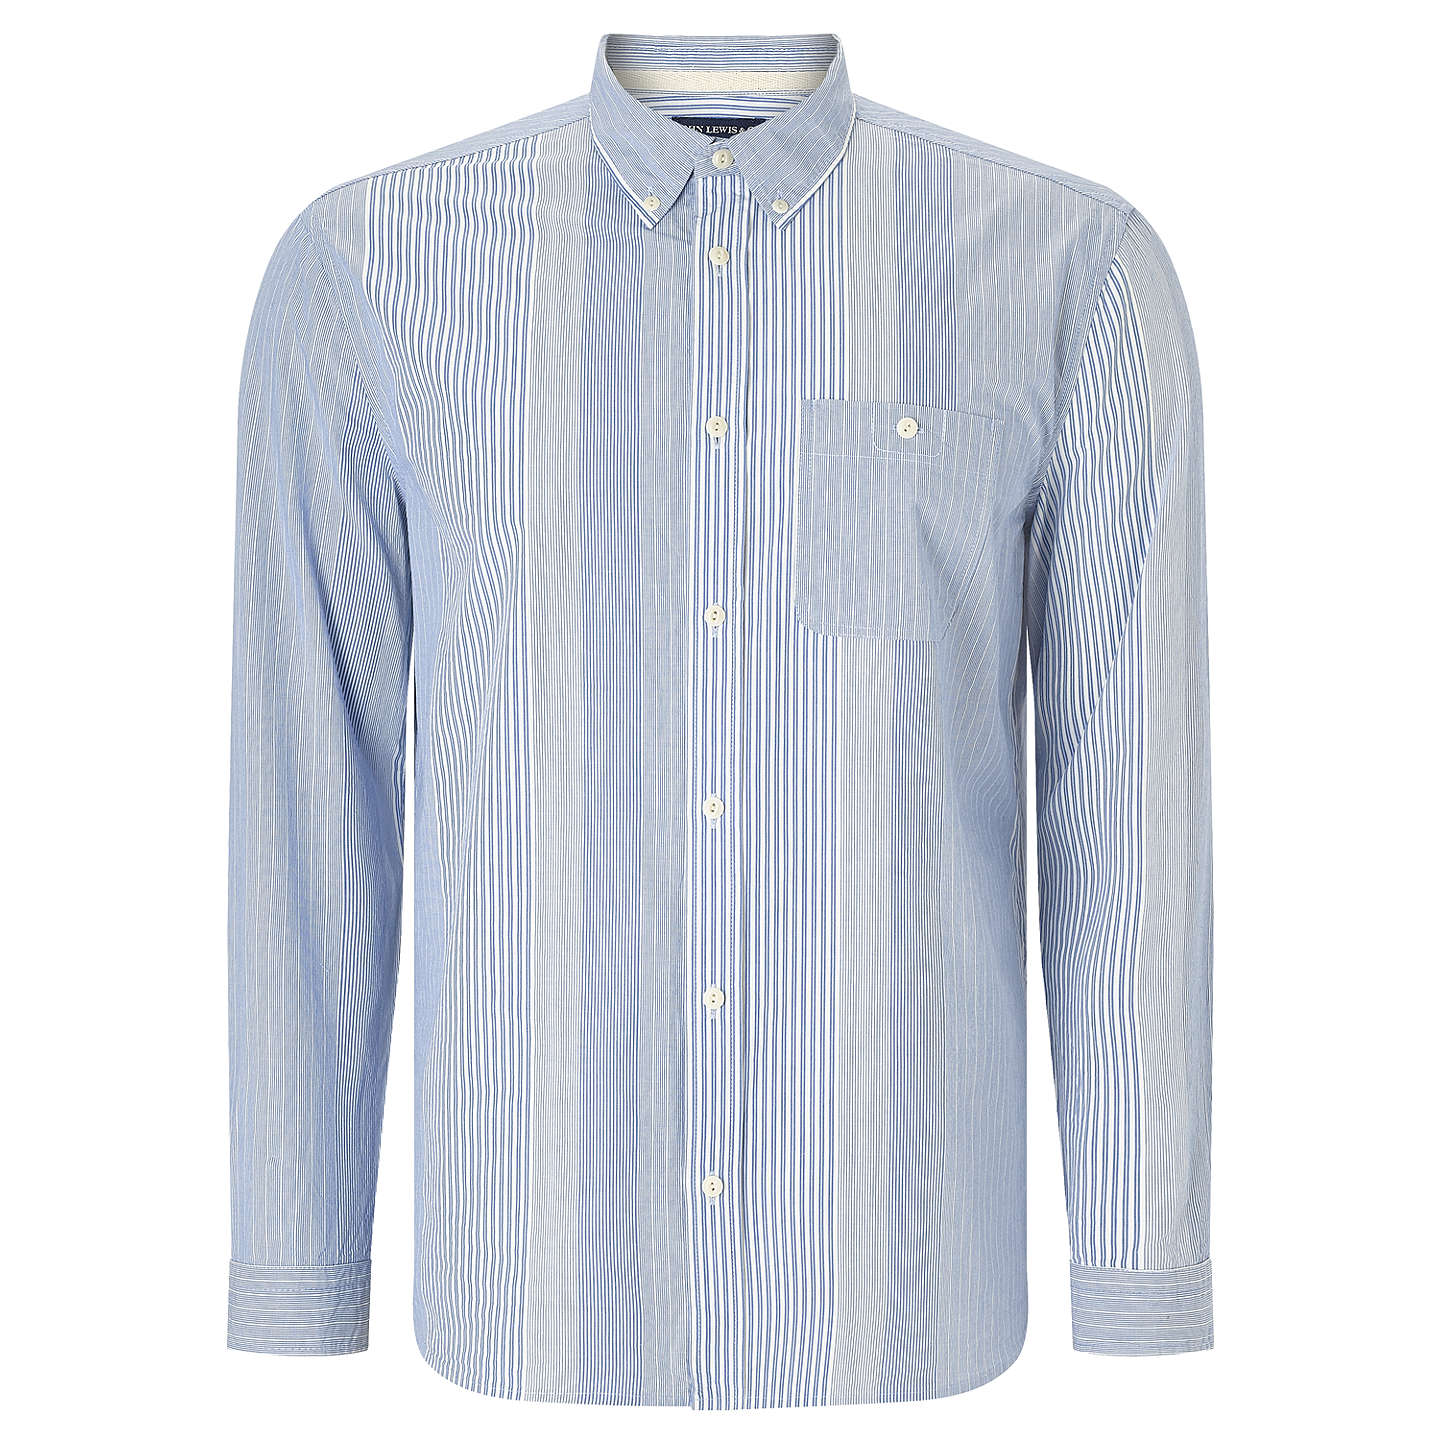 BuyJOHN LEWIS & Co. Lightweight Cotton Stripe Shirt, Blue, S Online at johnlewis.com